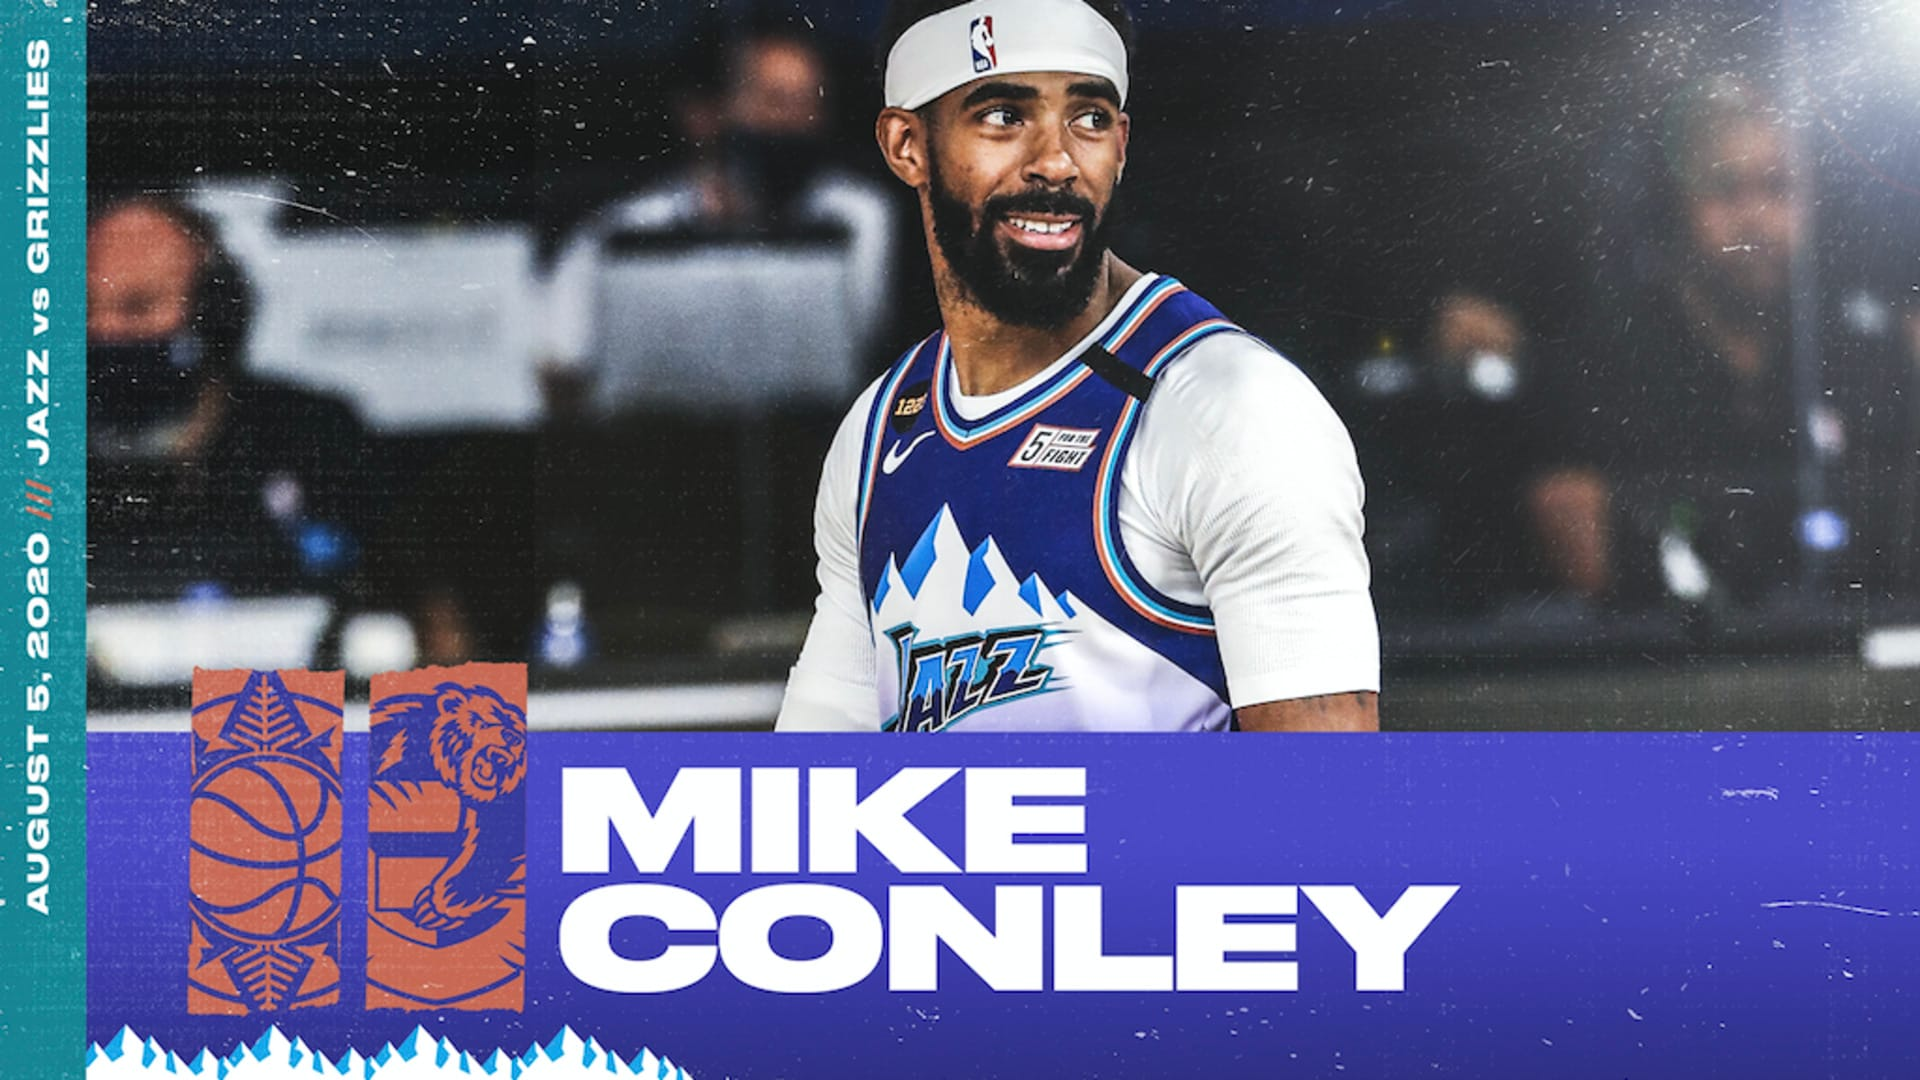 Highlights: Mike Conley — 23 points, 7 assists